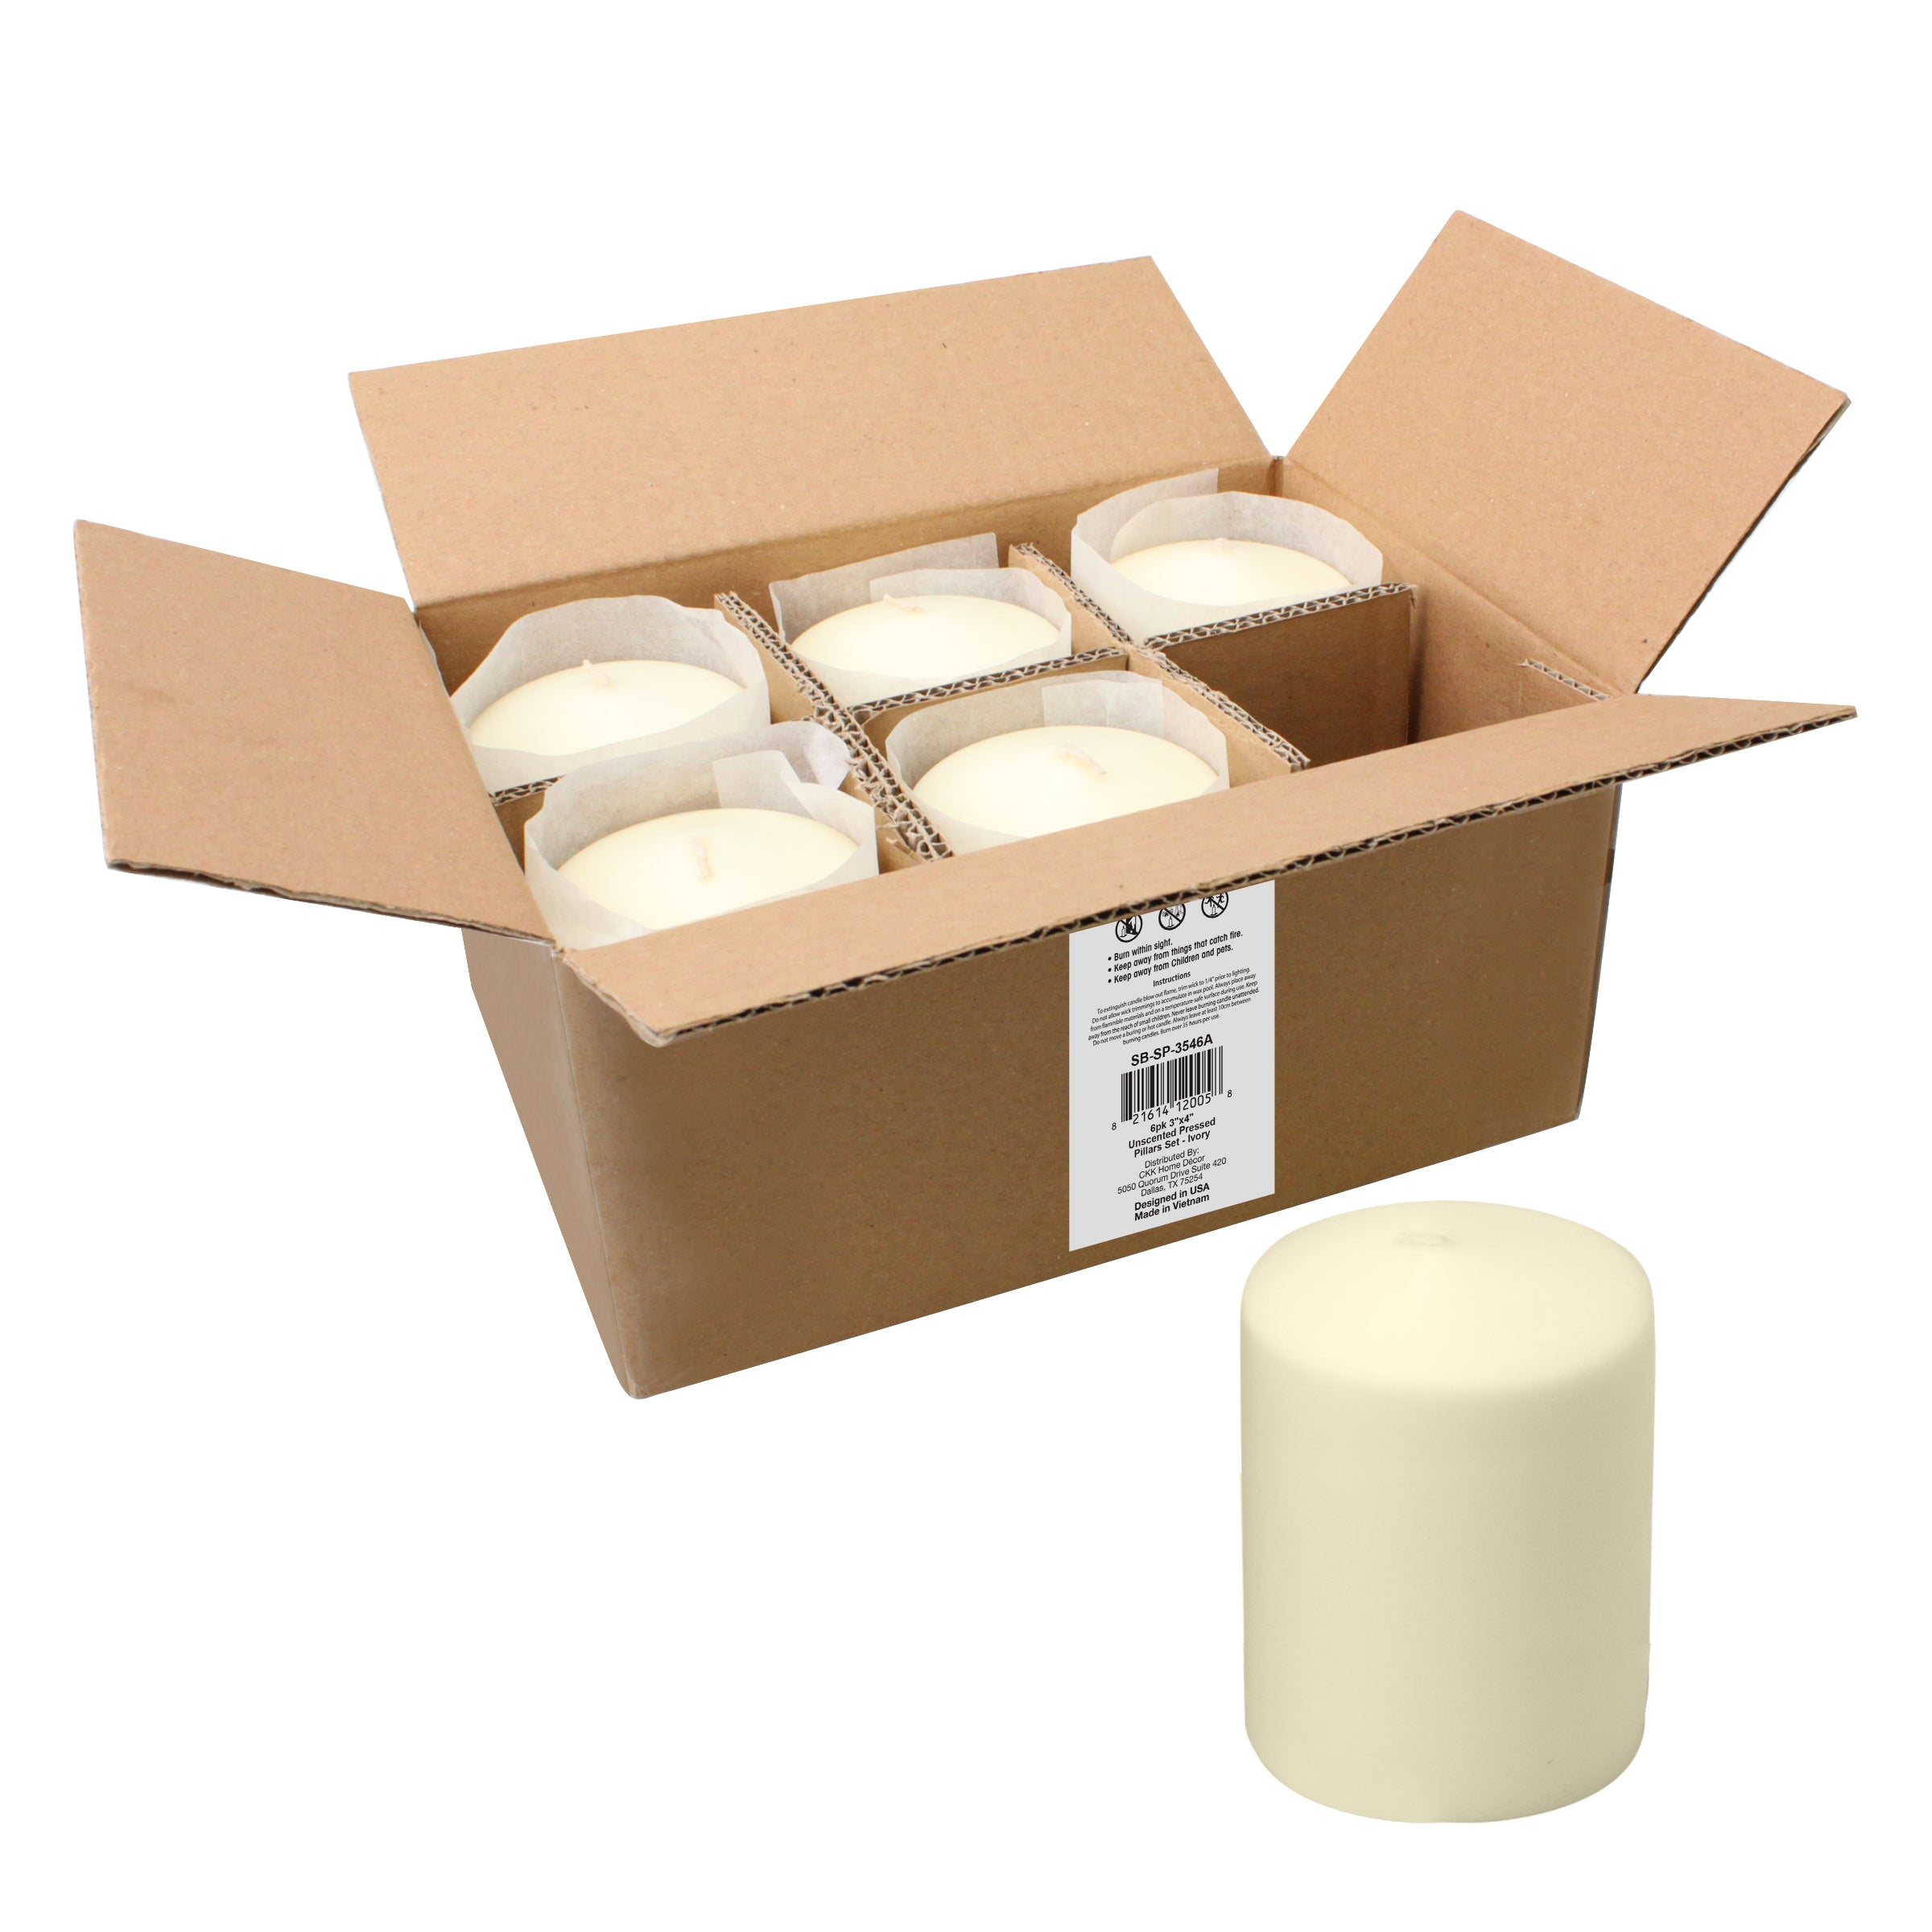 3 x 4 Unscented Ivory Pillar Candles, Set of 6